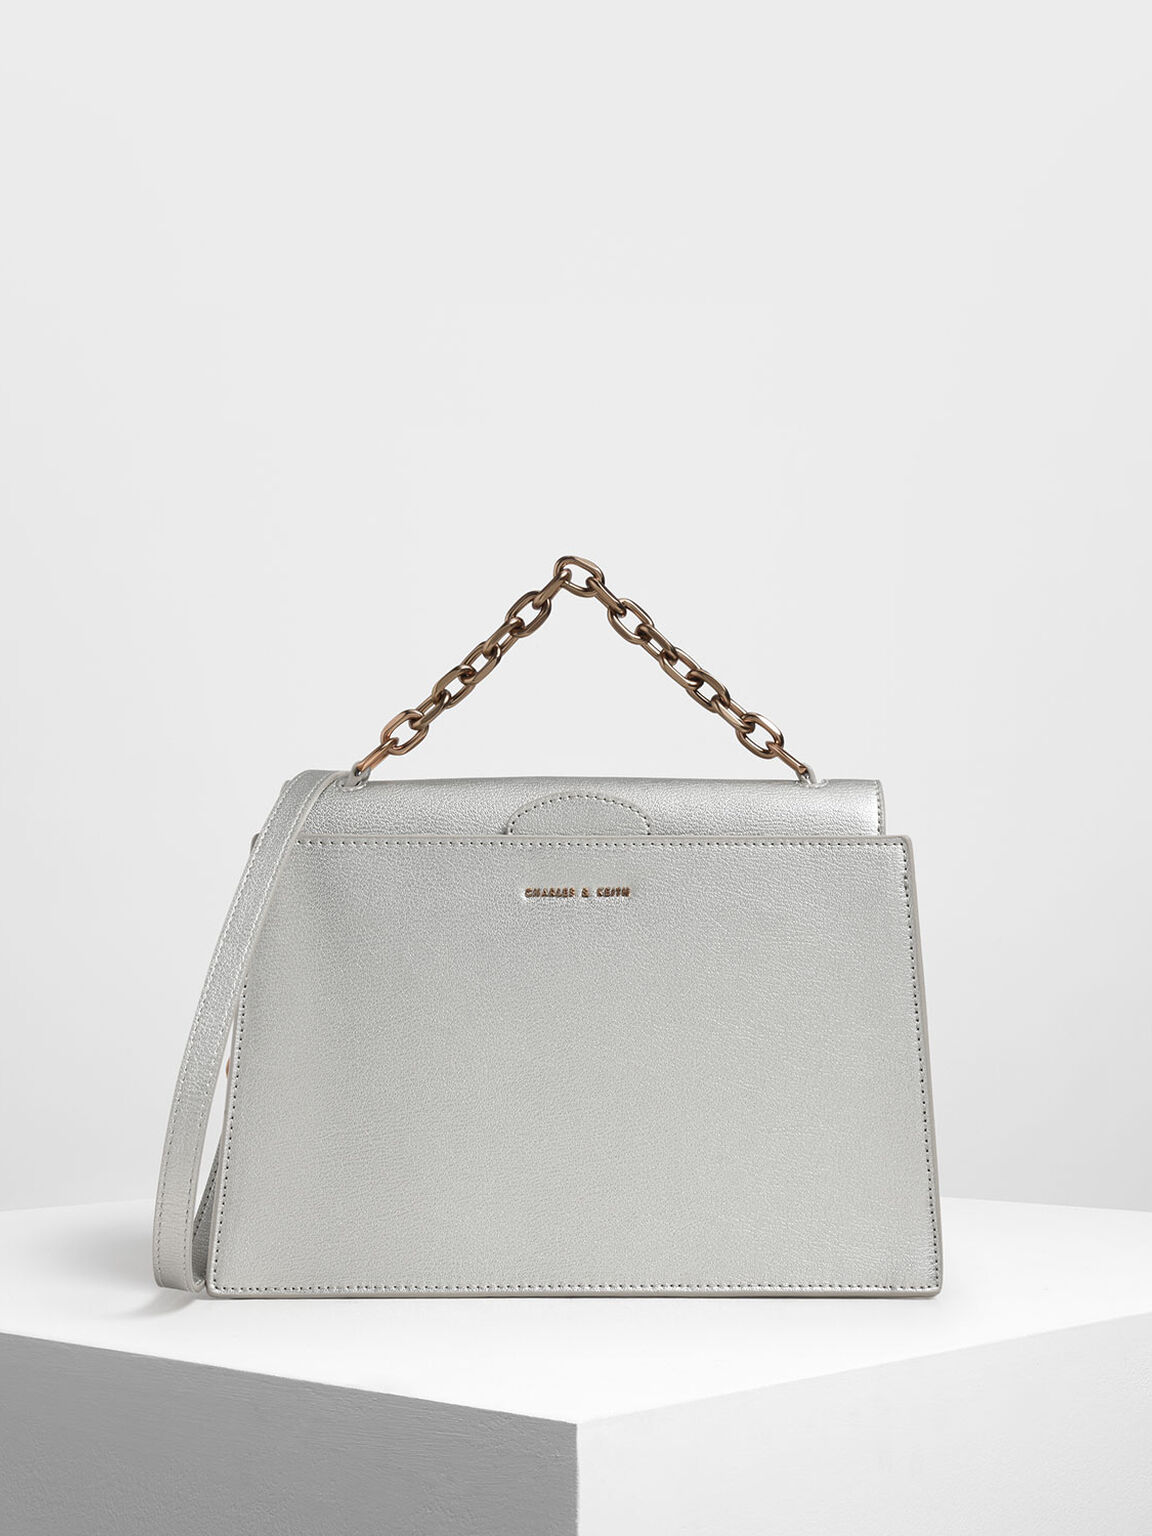 Tuck-In Flap Bag, Silver, hi-res